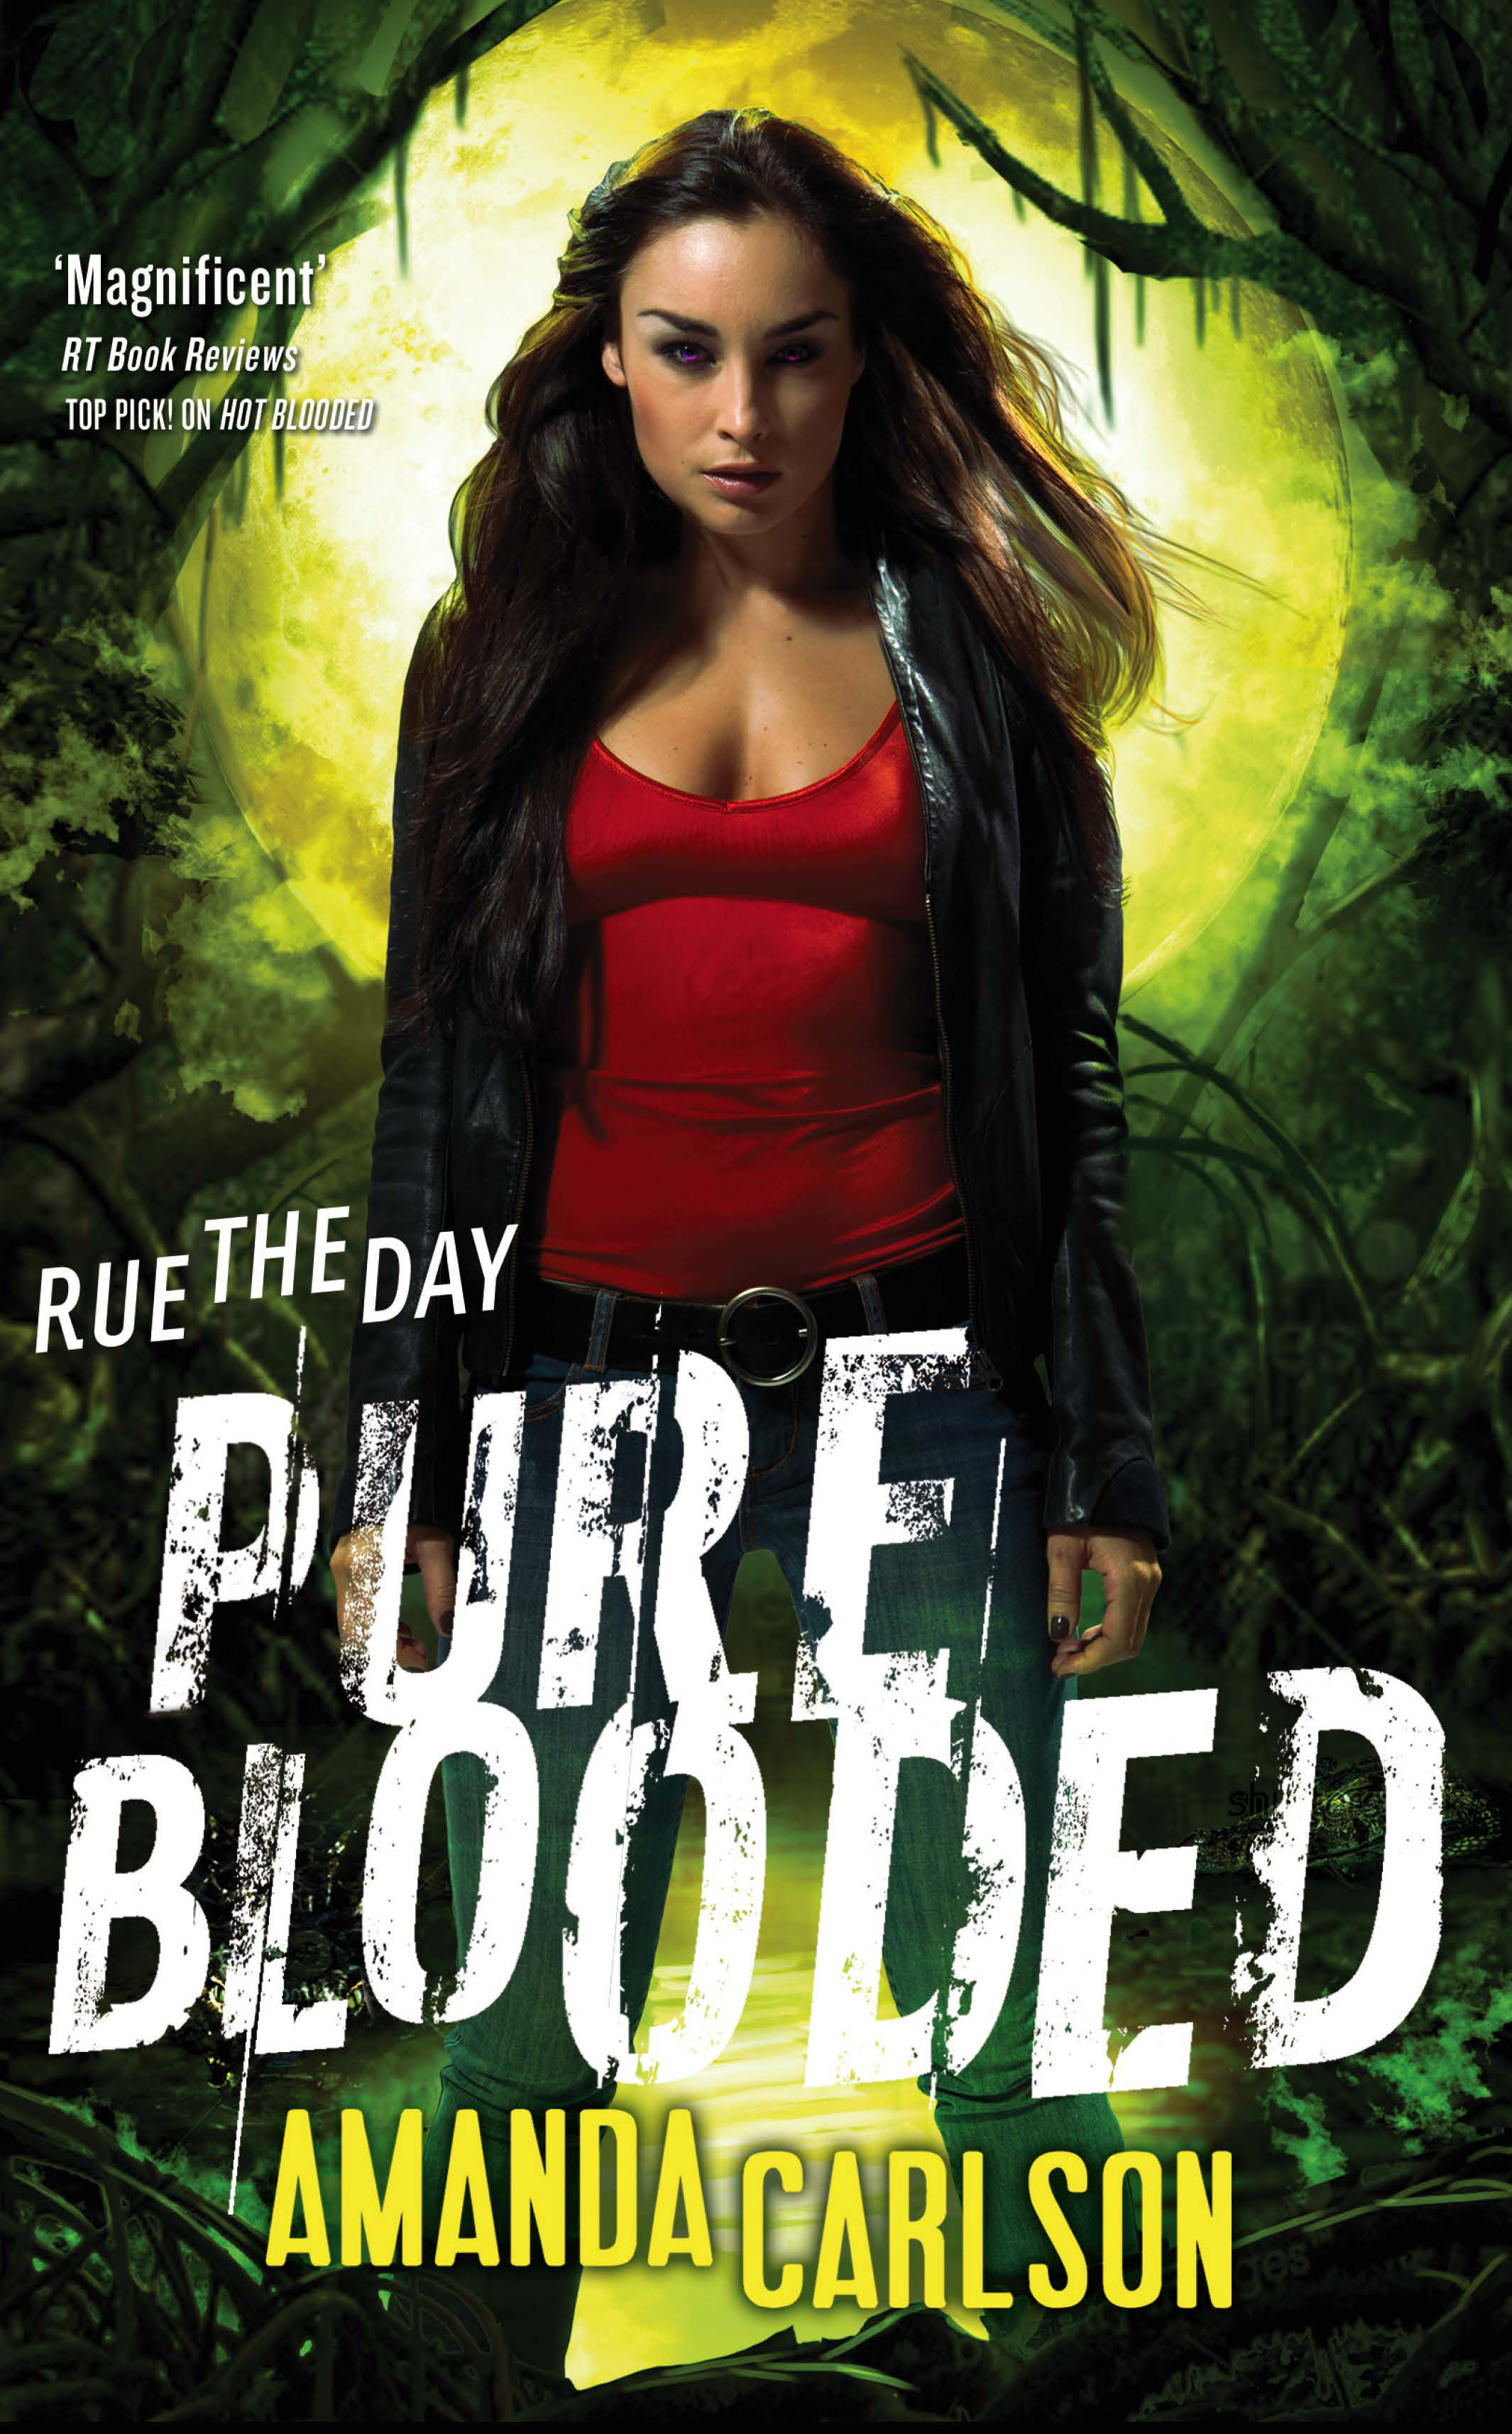 Pure blooded book 5 in the jessica mcclain series by amanda carlson pure blooded book 5 in the jessica mcclain series by amanda carlson books hachette australia fandeluxe Gallery